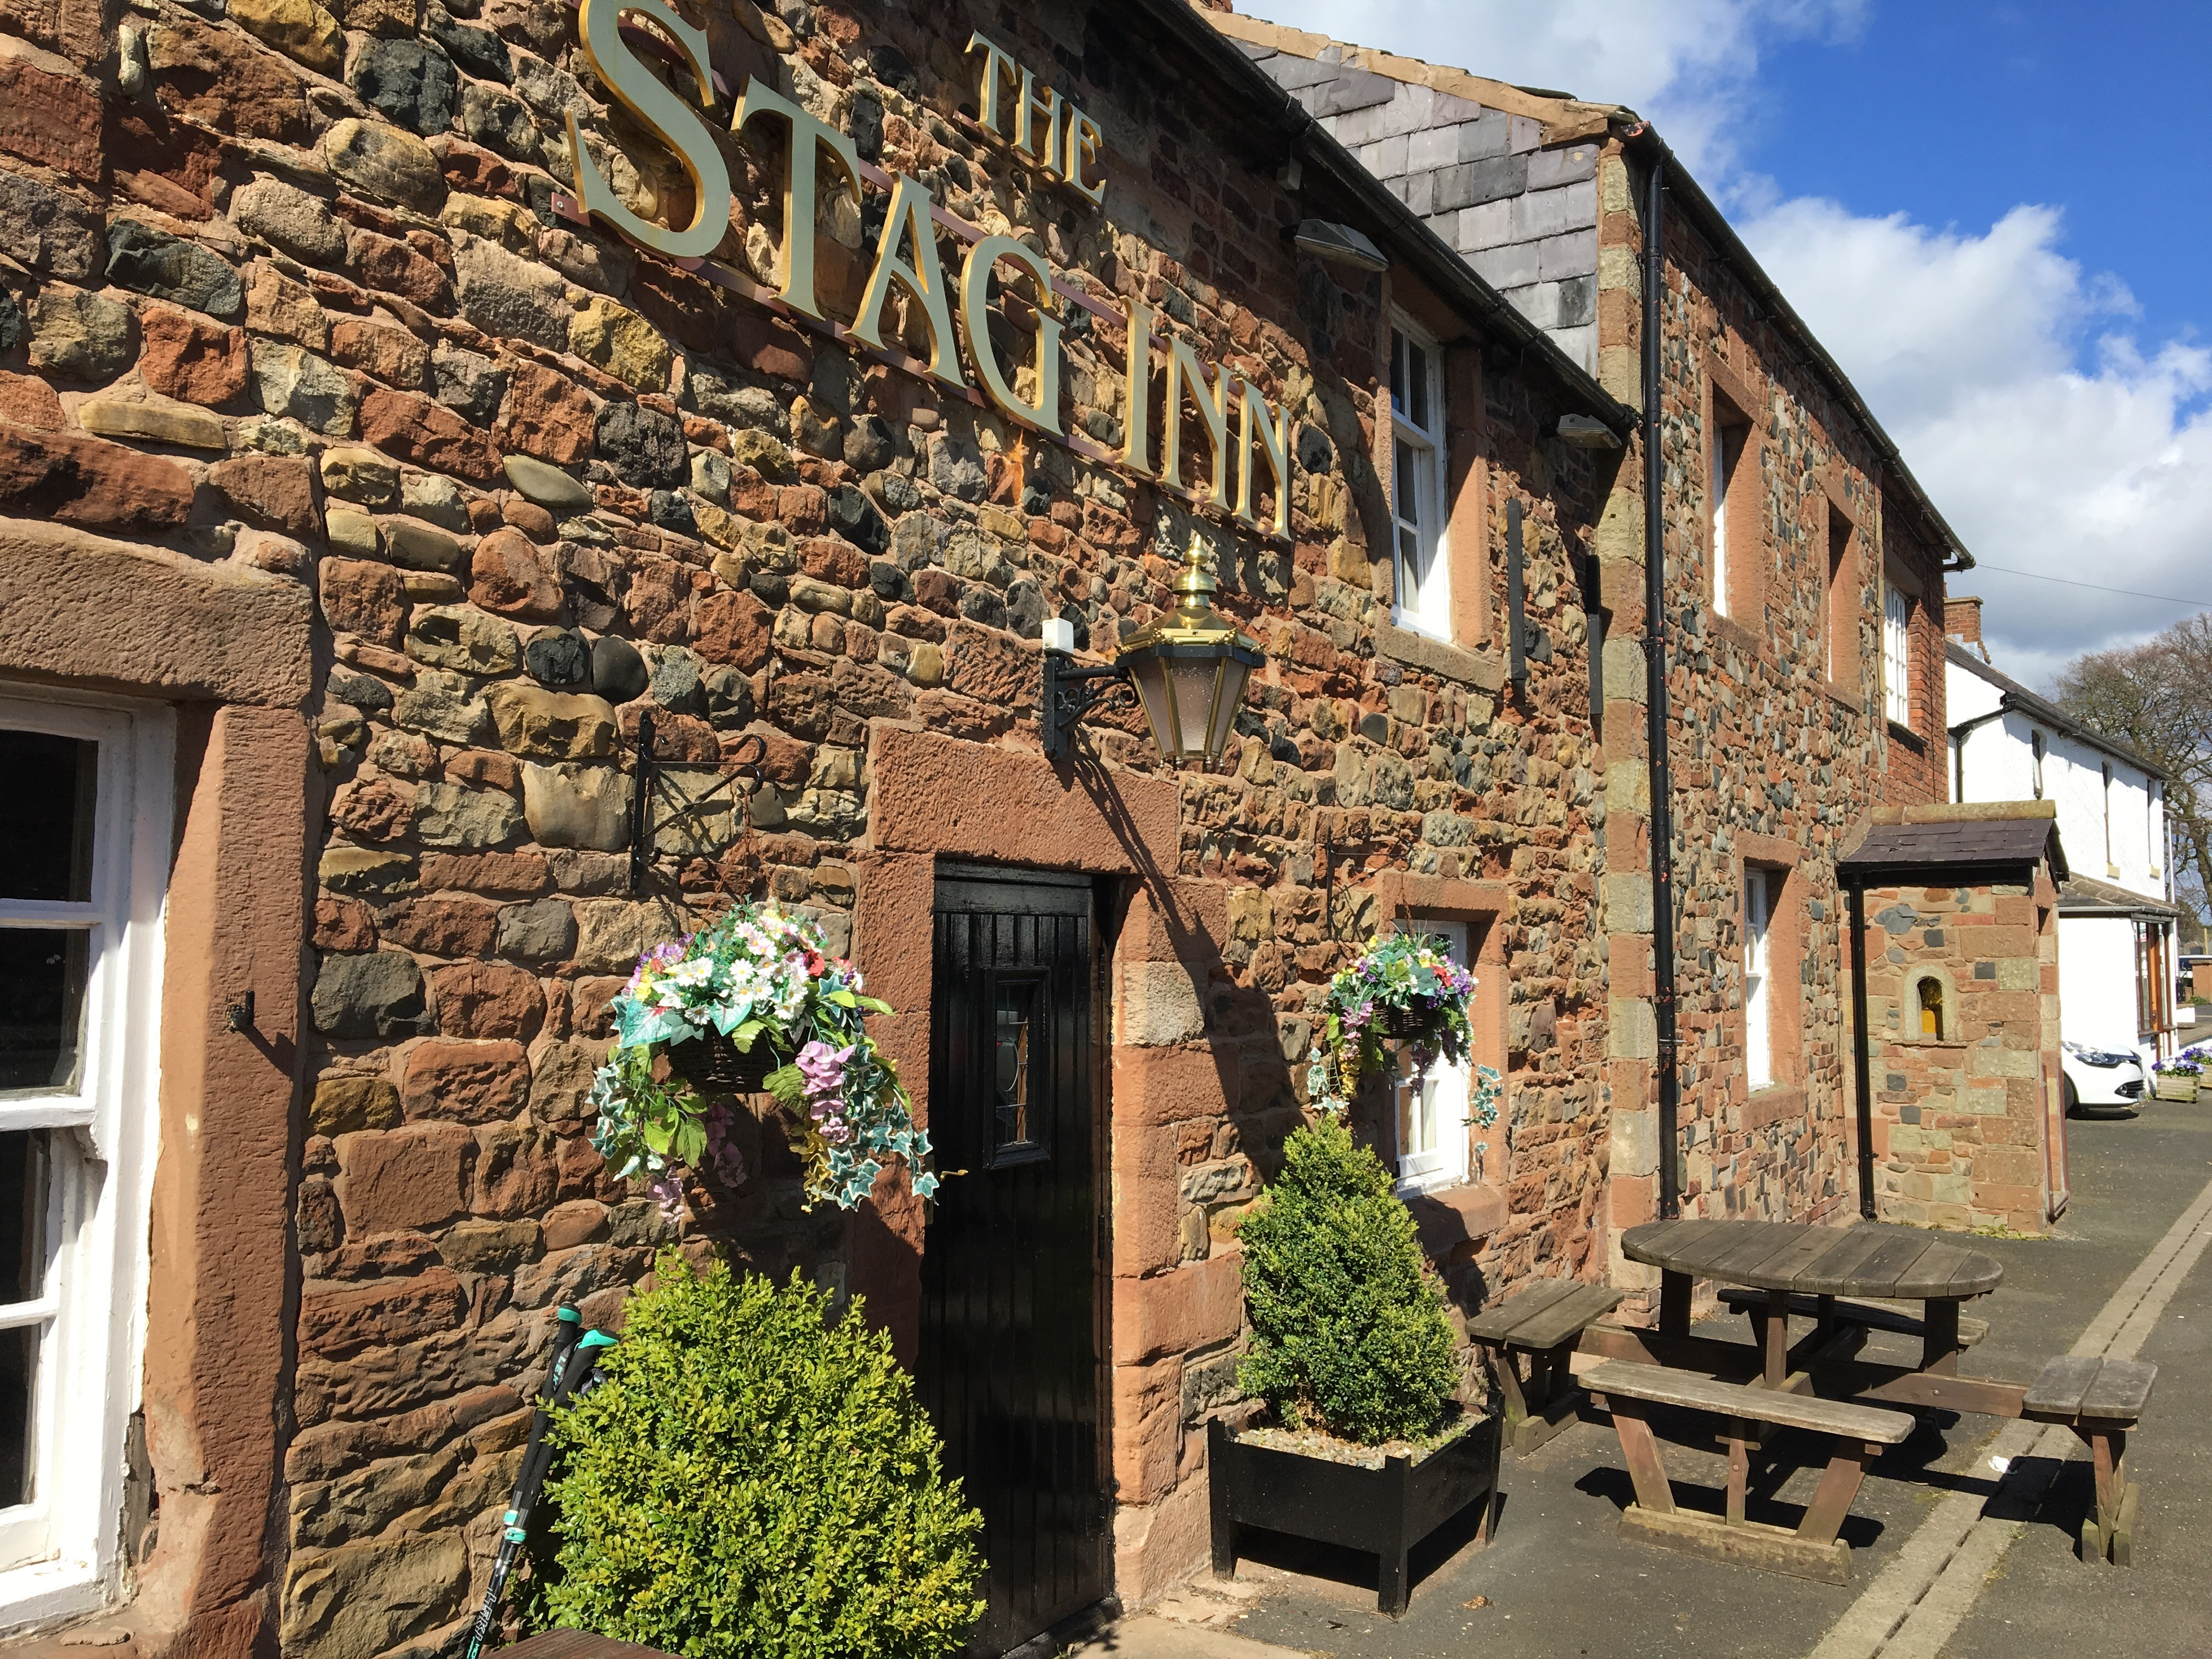 The Stag Inn, Hadrian's Wall